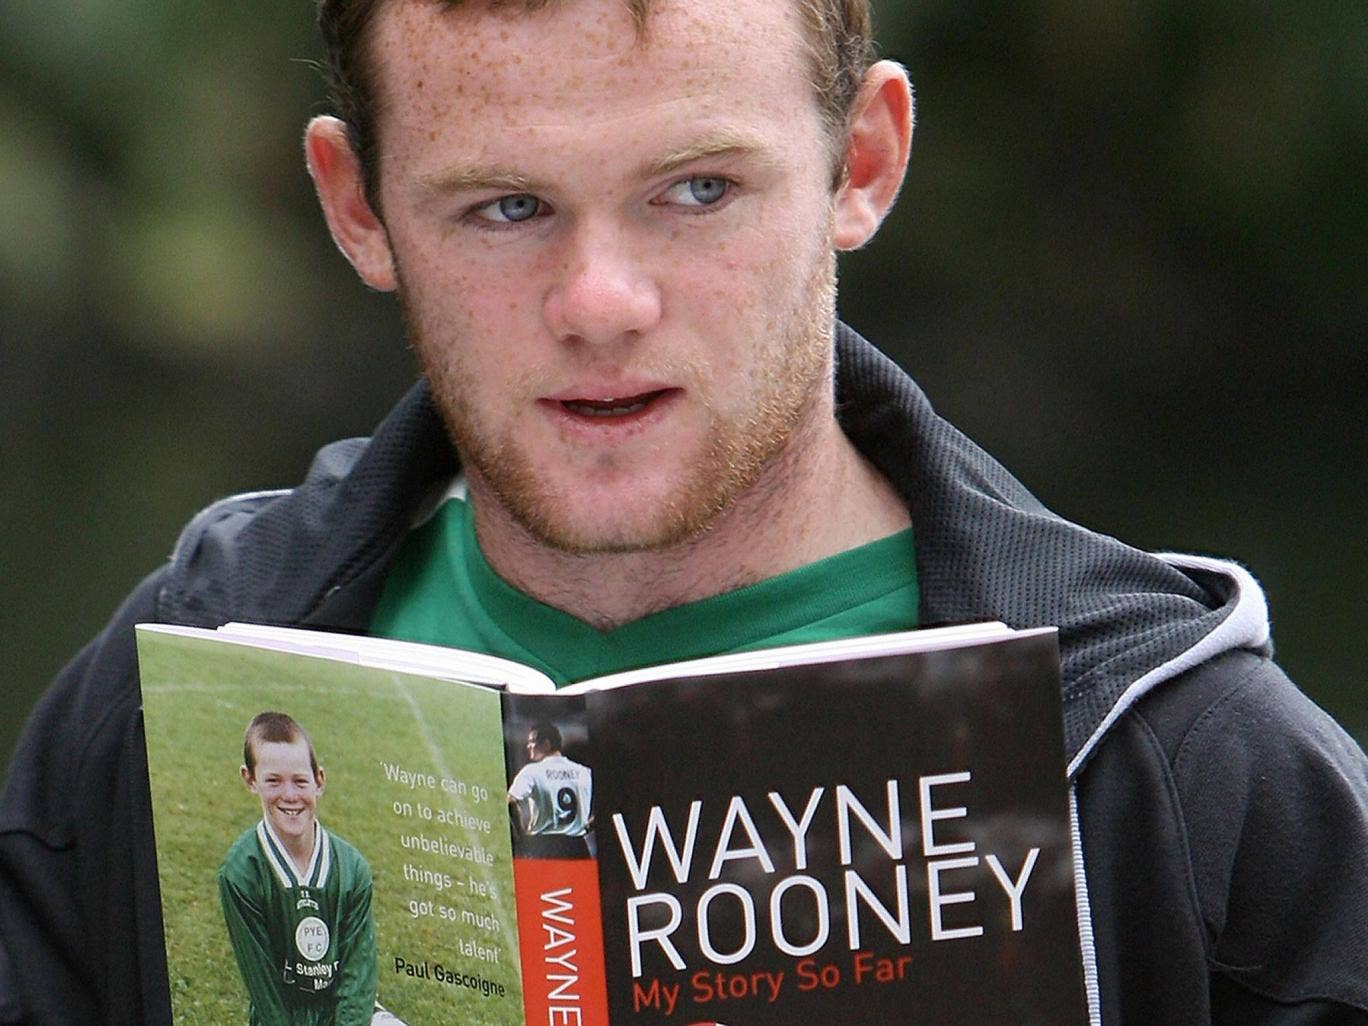 Manchester United striker Wayne Rooney launches his book 'My Story So Far'